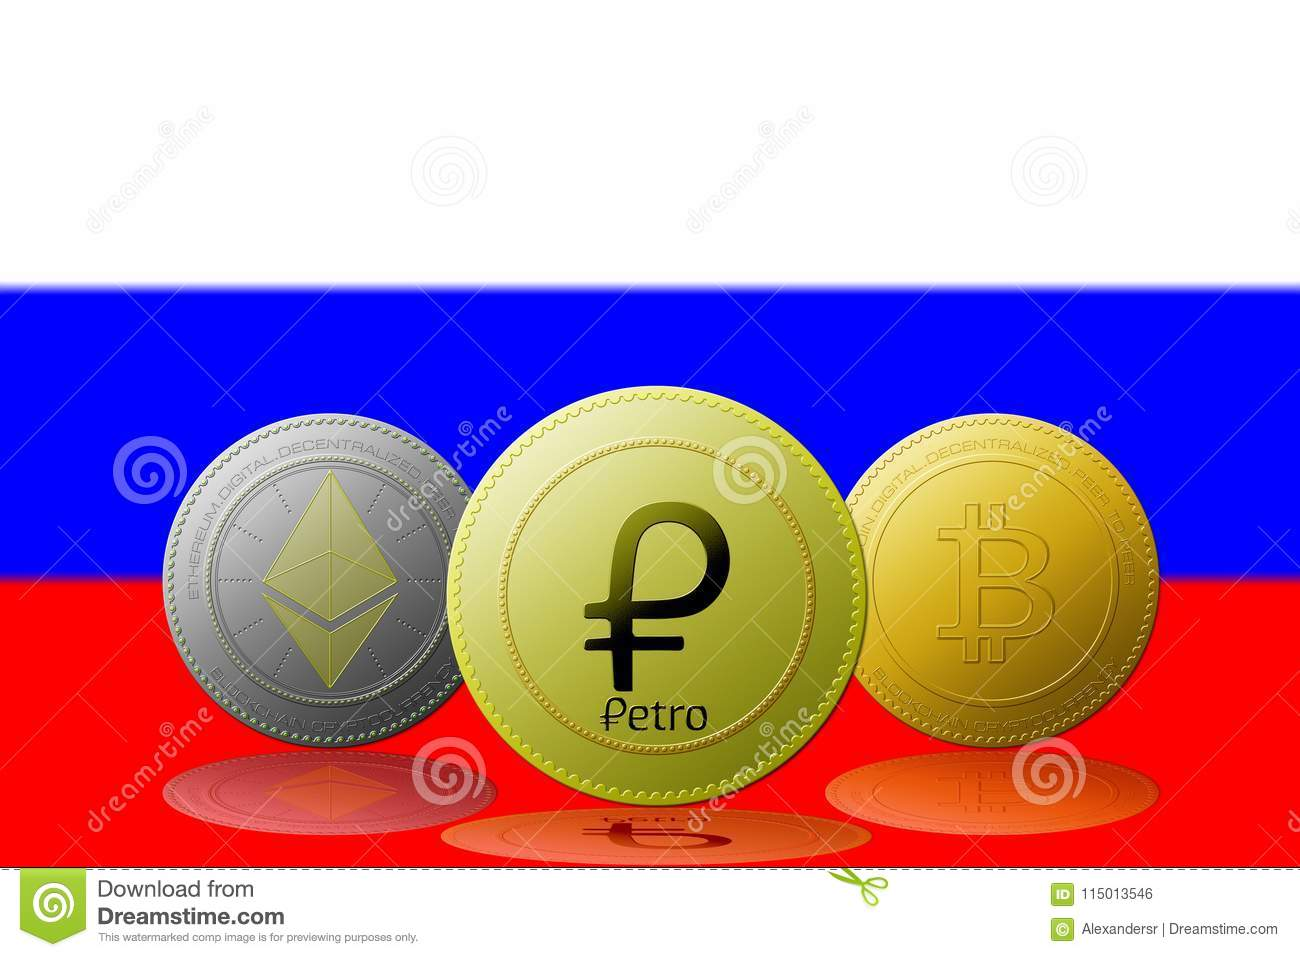 where can i buy petro cryptocurrency